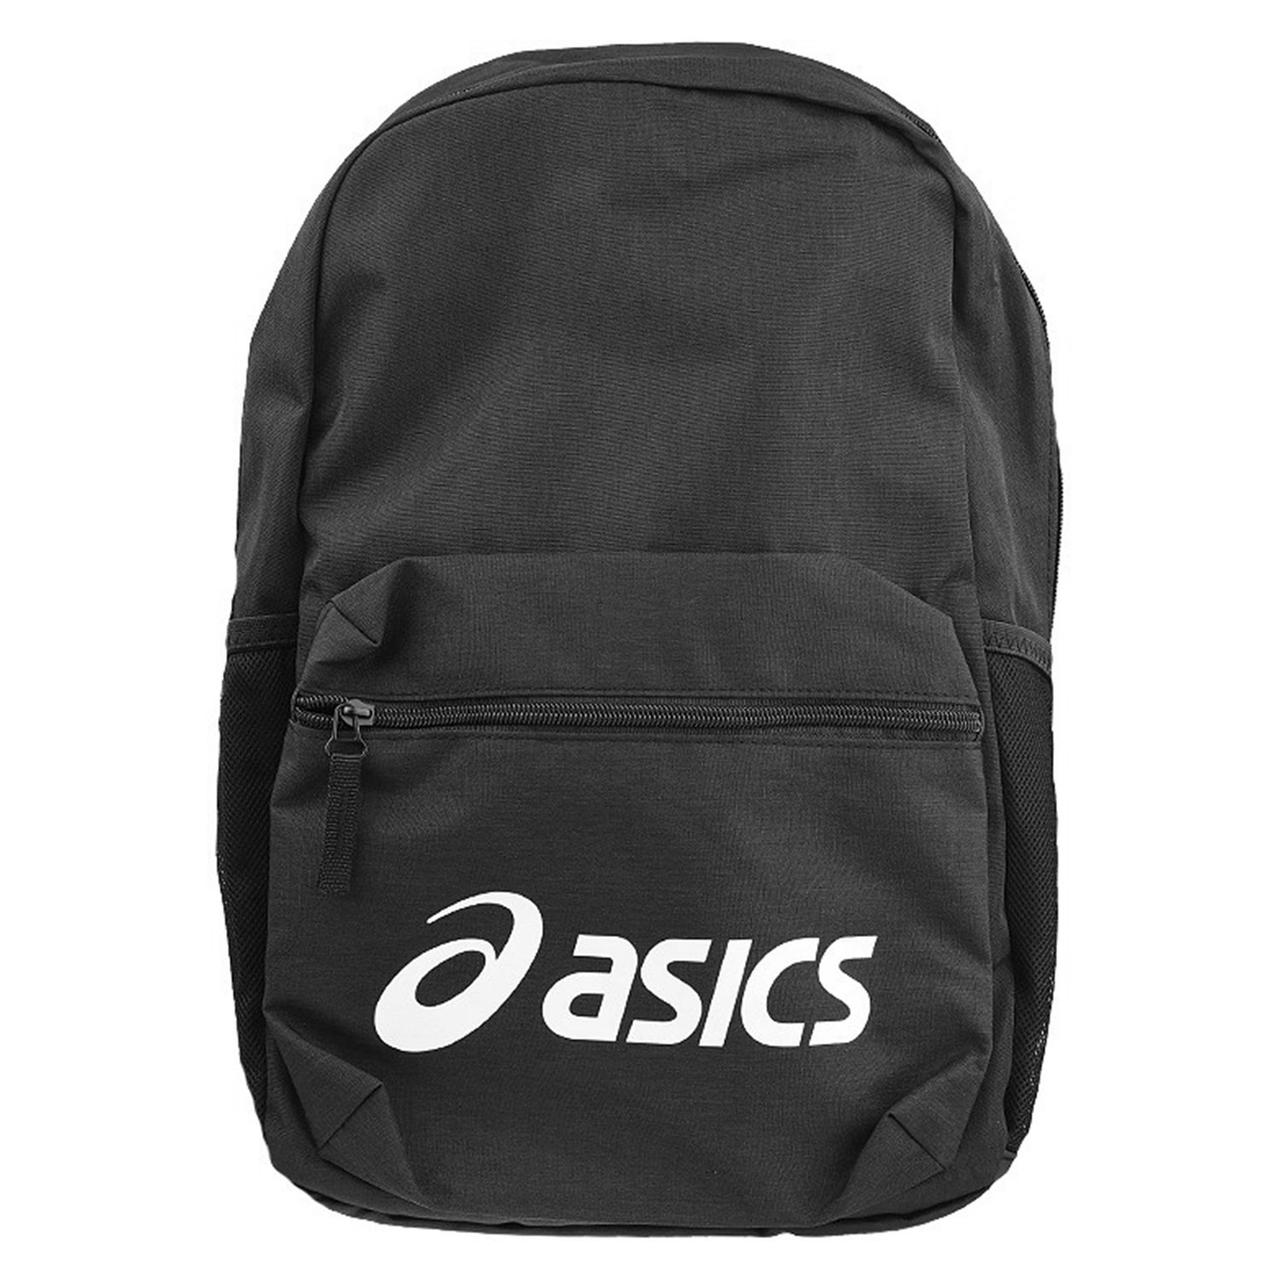 Рюкзак Asics Sport Backpack 3033A411-001